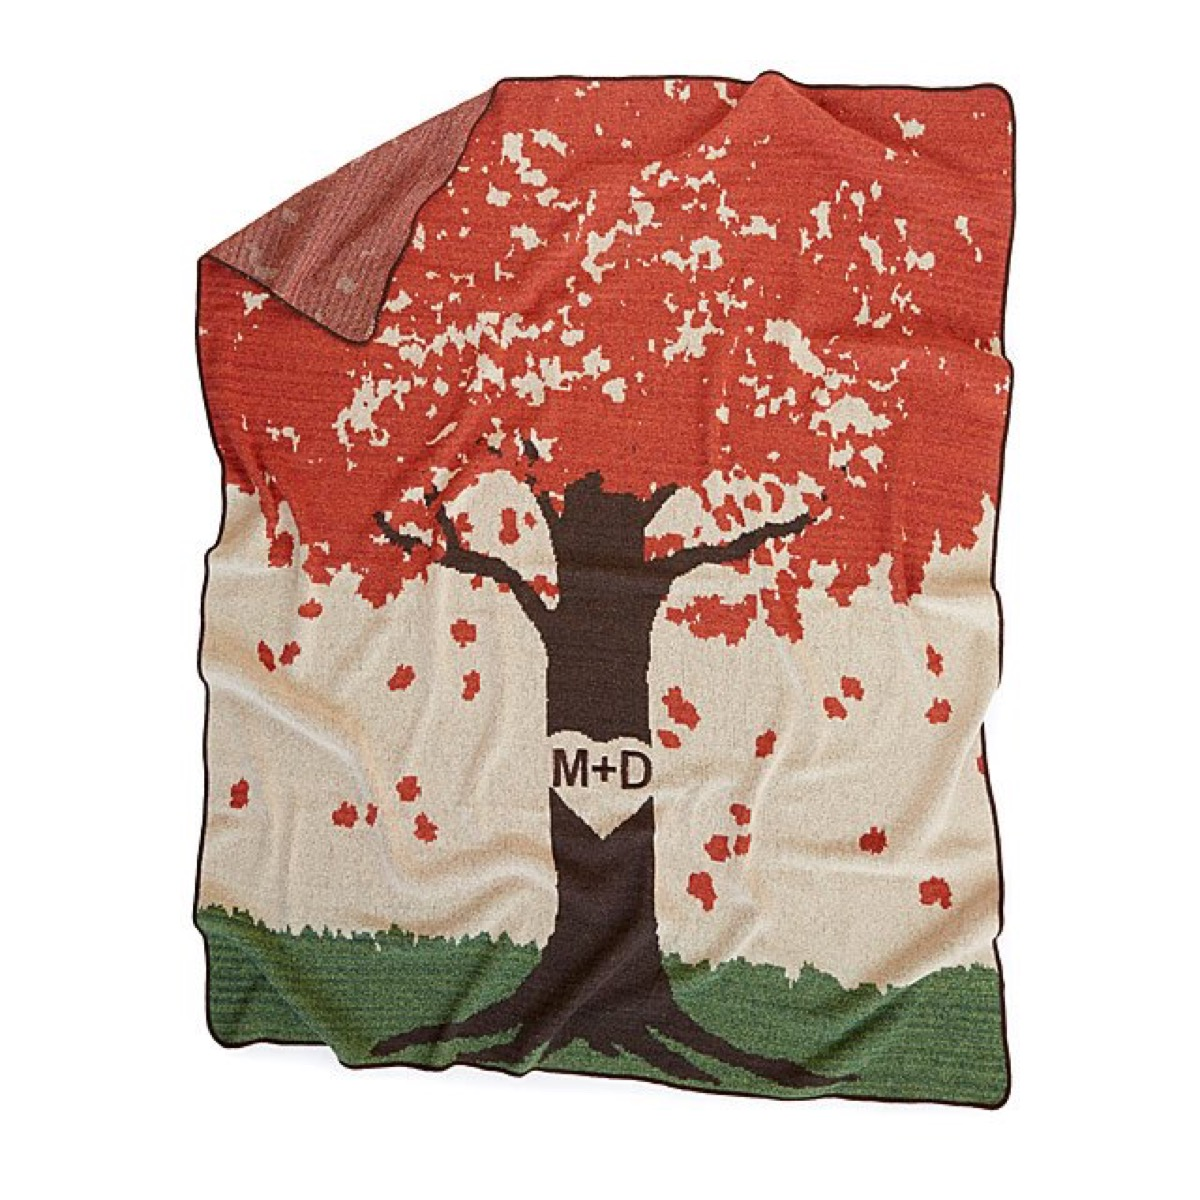 blanket with tree on it, fall home decor